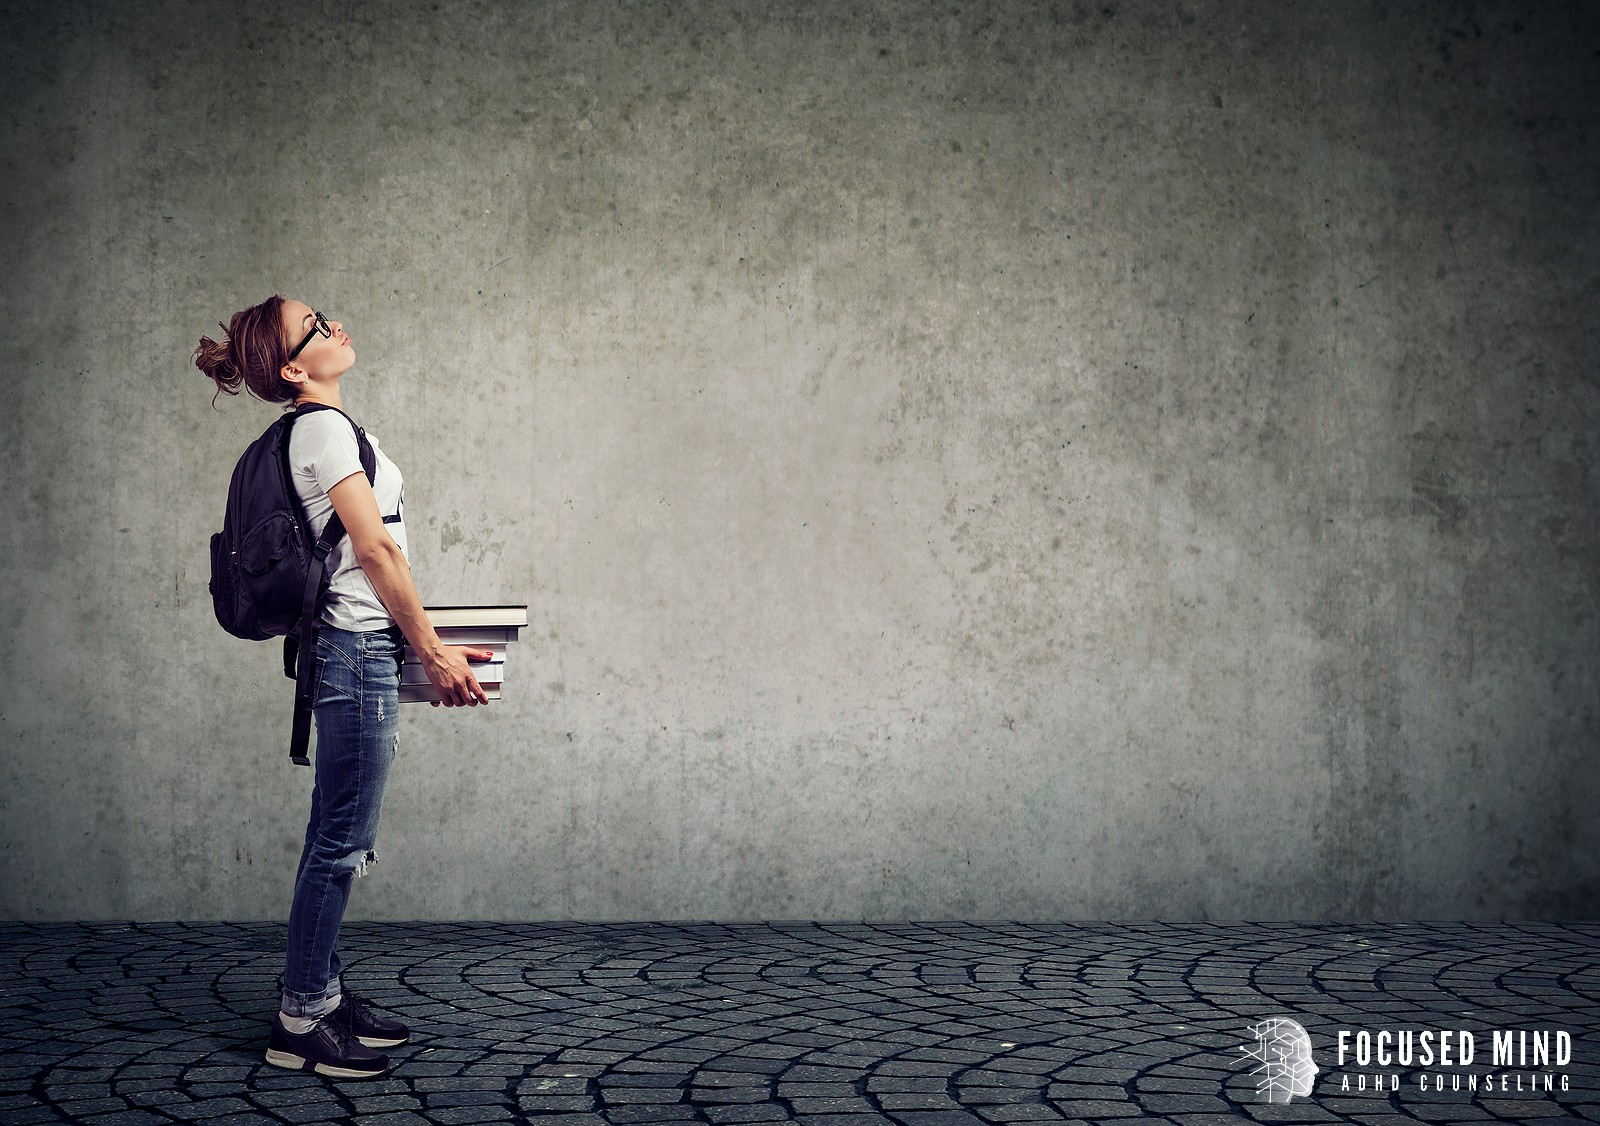 A student holds textbooks in hand as they appear to struggle with the weight. This could represent the weight of anxiety related ADHD. Learn more about our adult ADHD quiz by contacting Focused Mind ADHD Counseling today! 43017   43016   43220